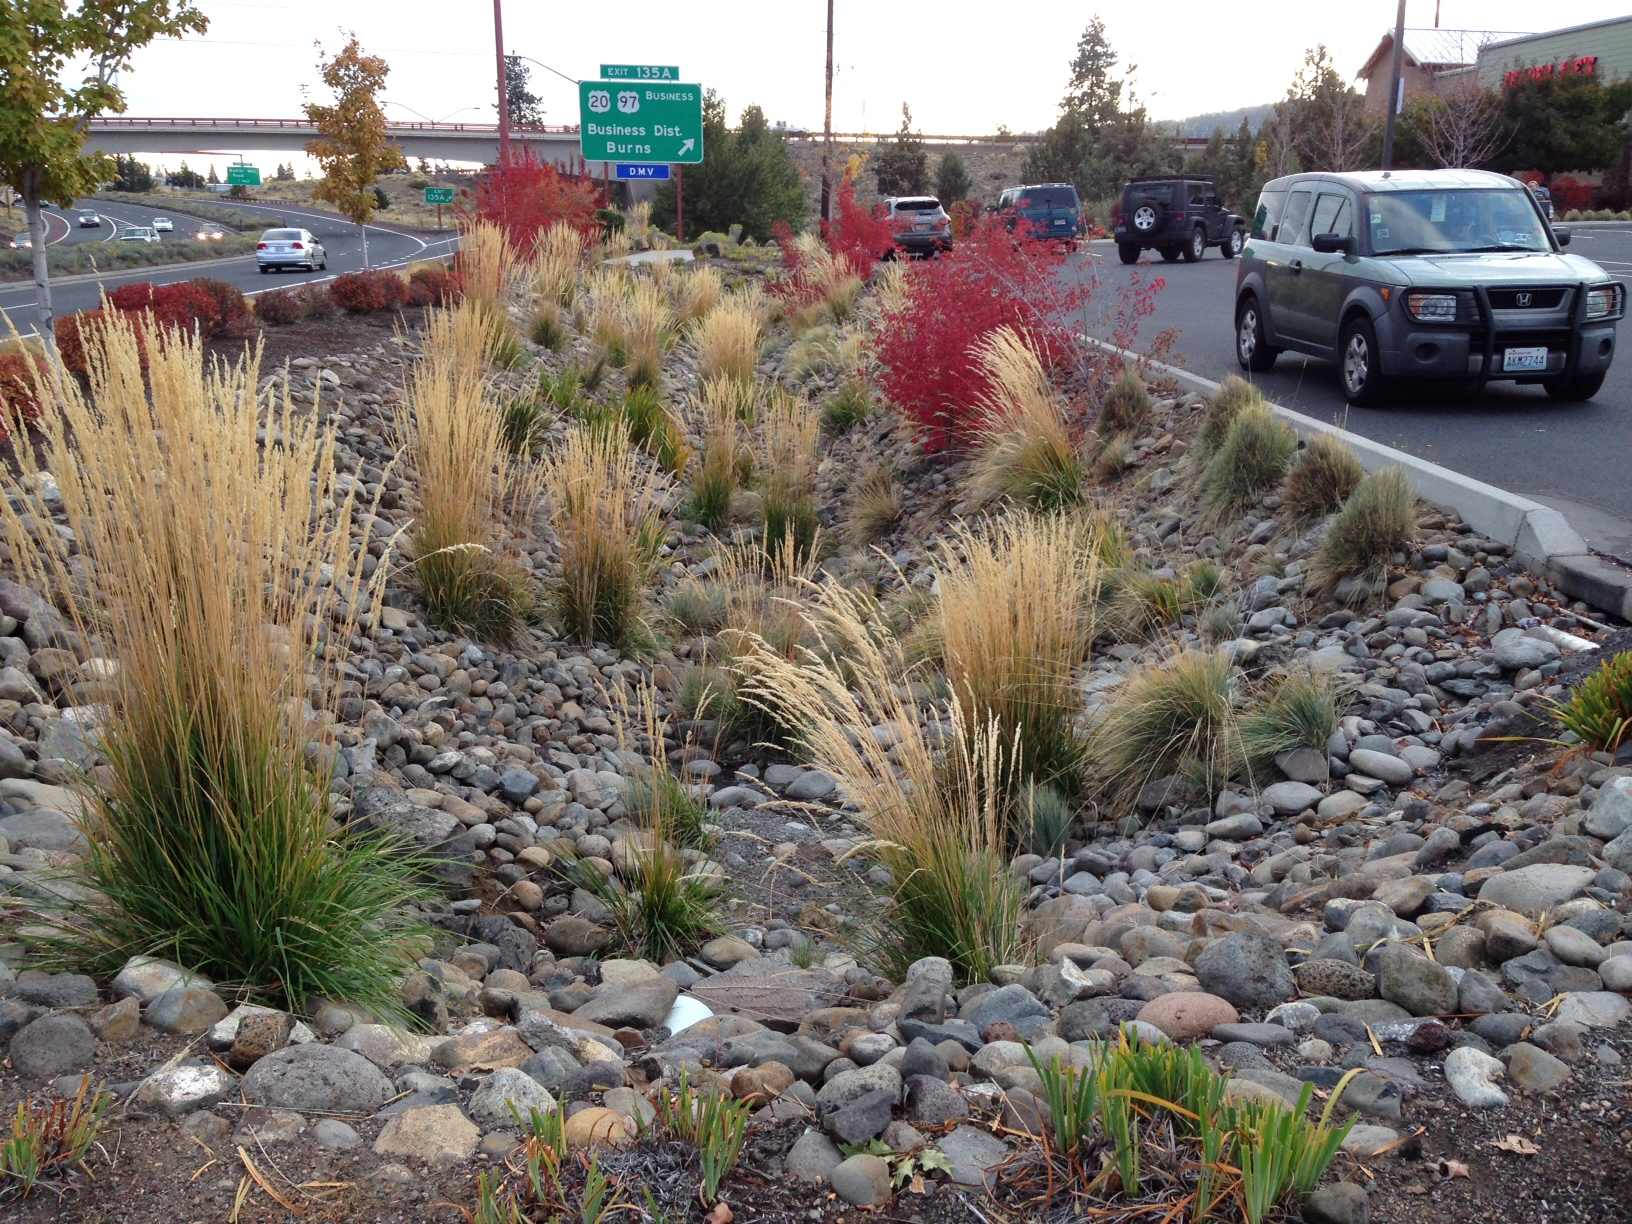 Water-catching Bioswale